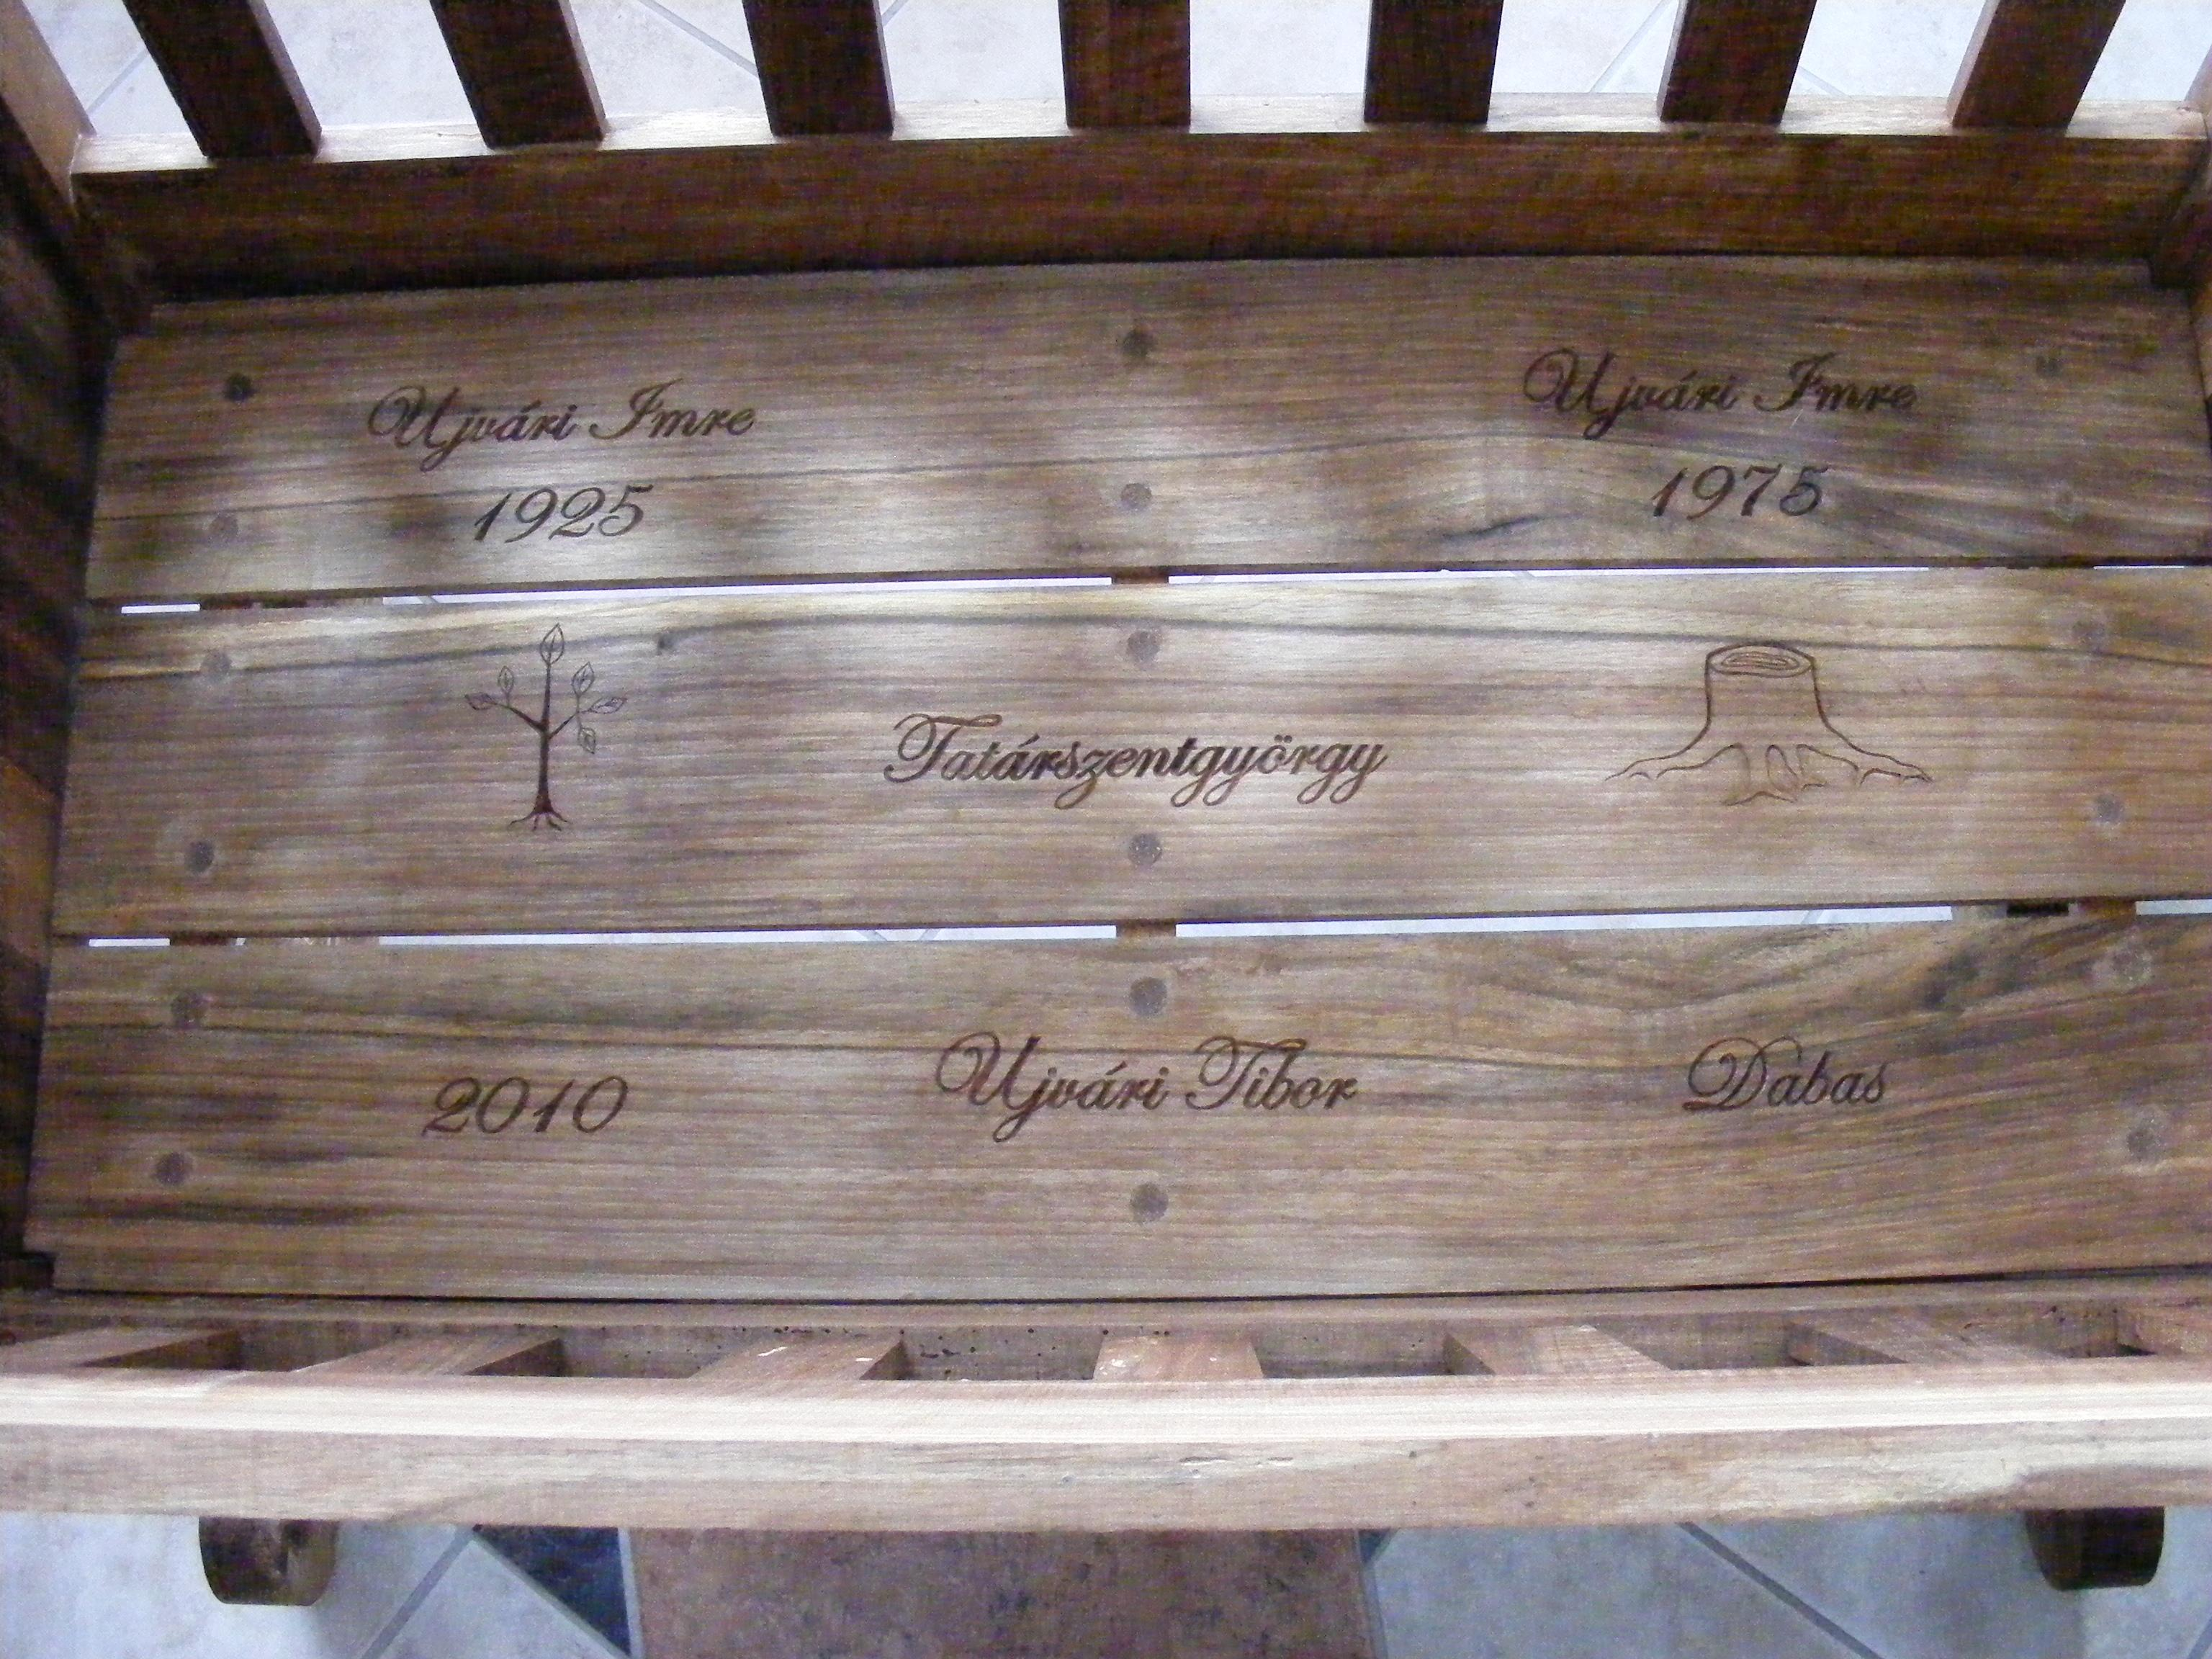 The bottom of the cradle with the names of the grandfather (born in 1925), the customers name in the middle, the girls fathers name (born in 1975) and 2010, the date of birth